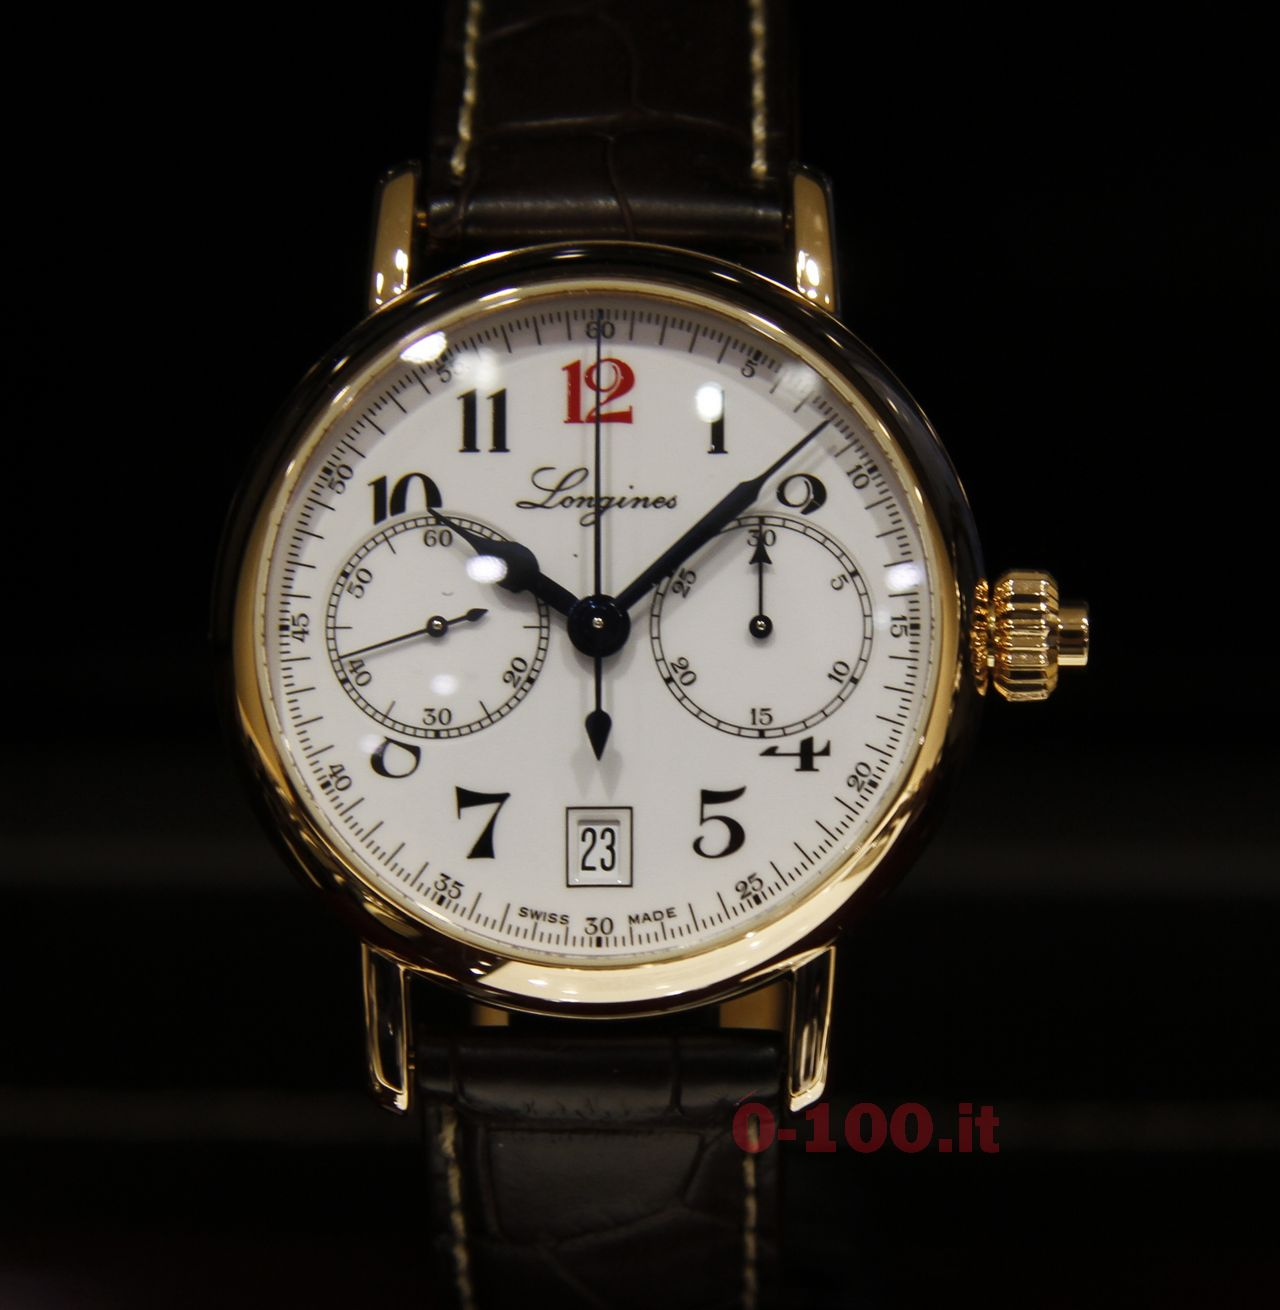 Longines Column-Wheel-Single-Push-Piece-Chronograph-0-100_11